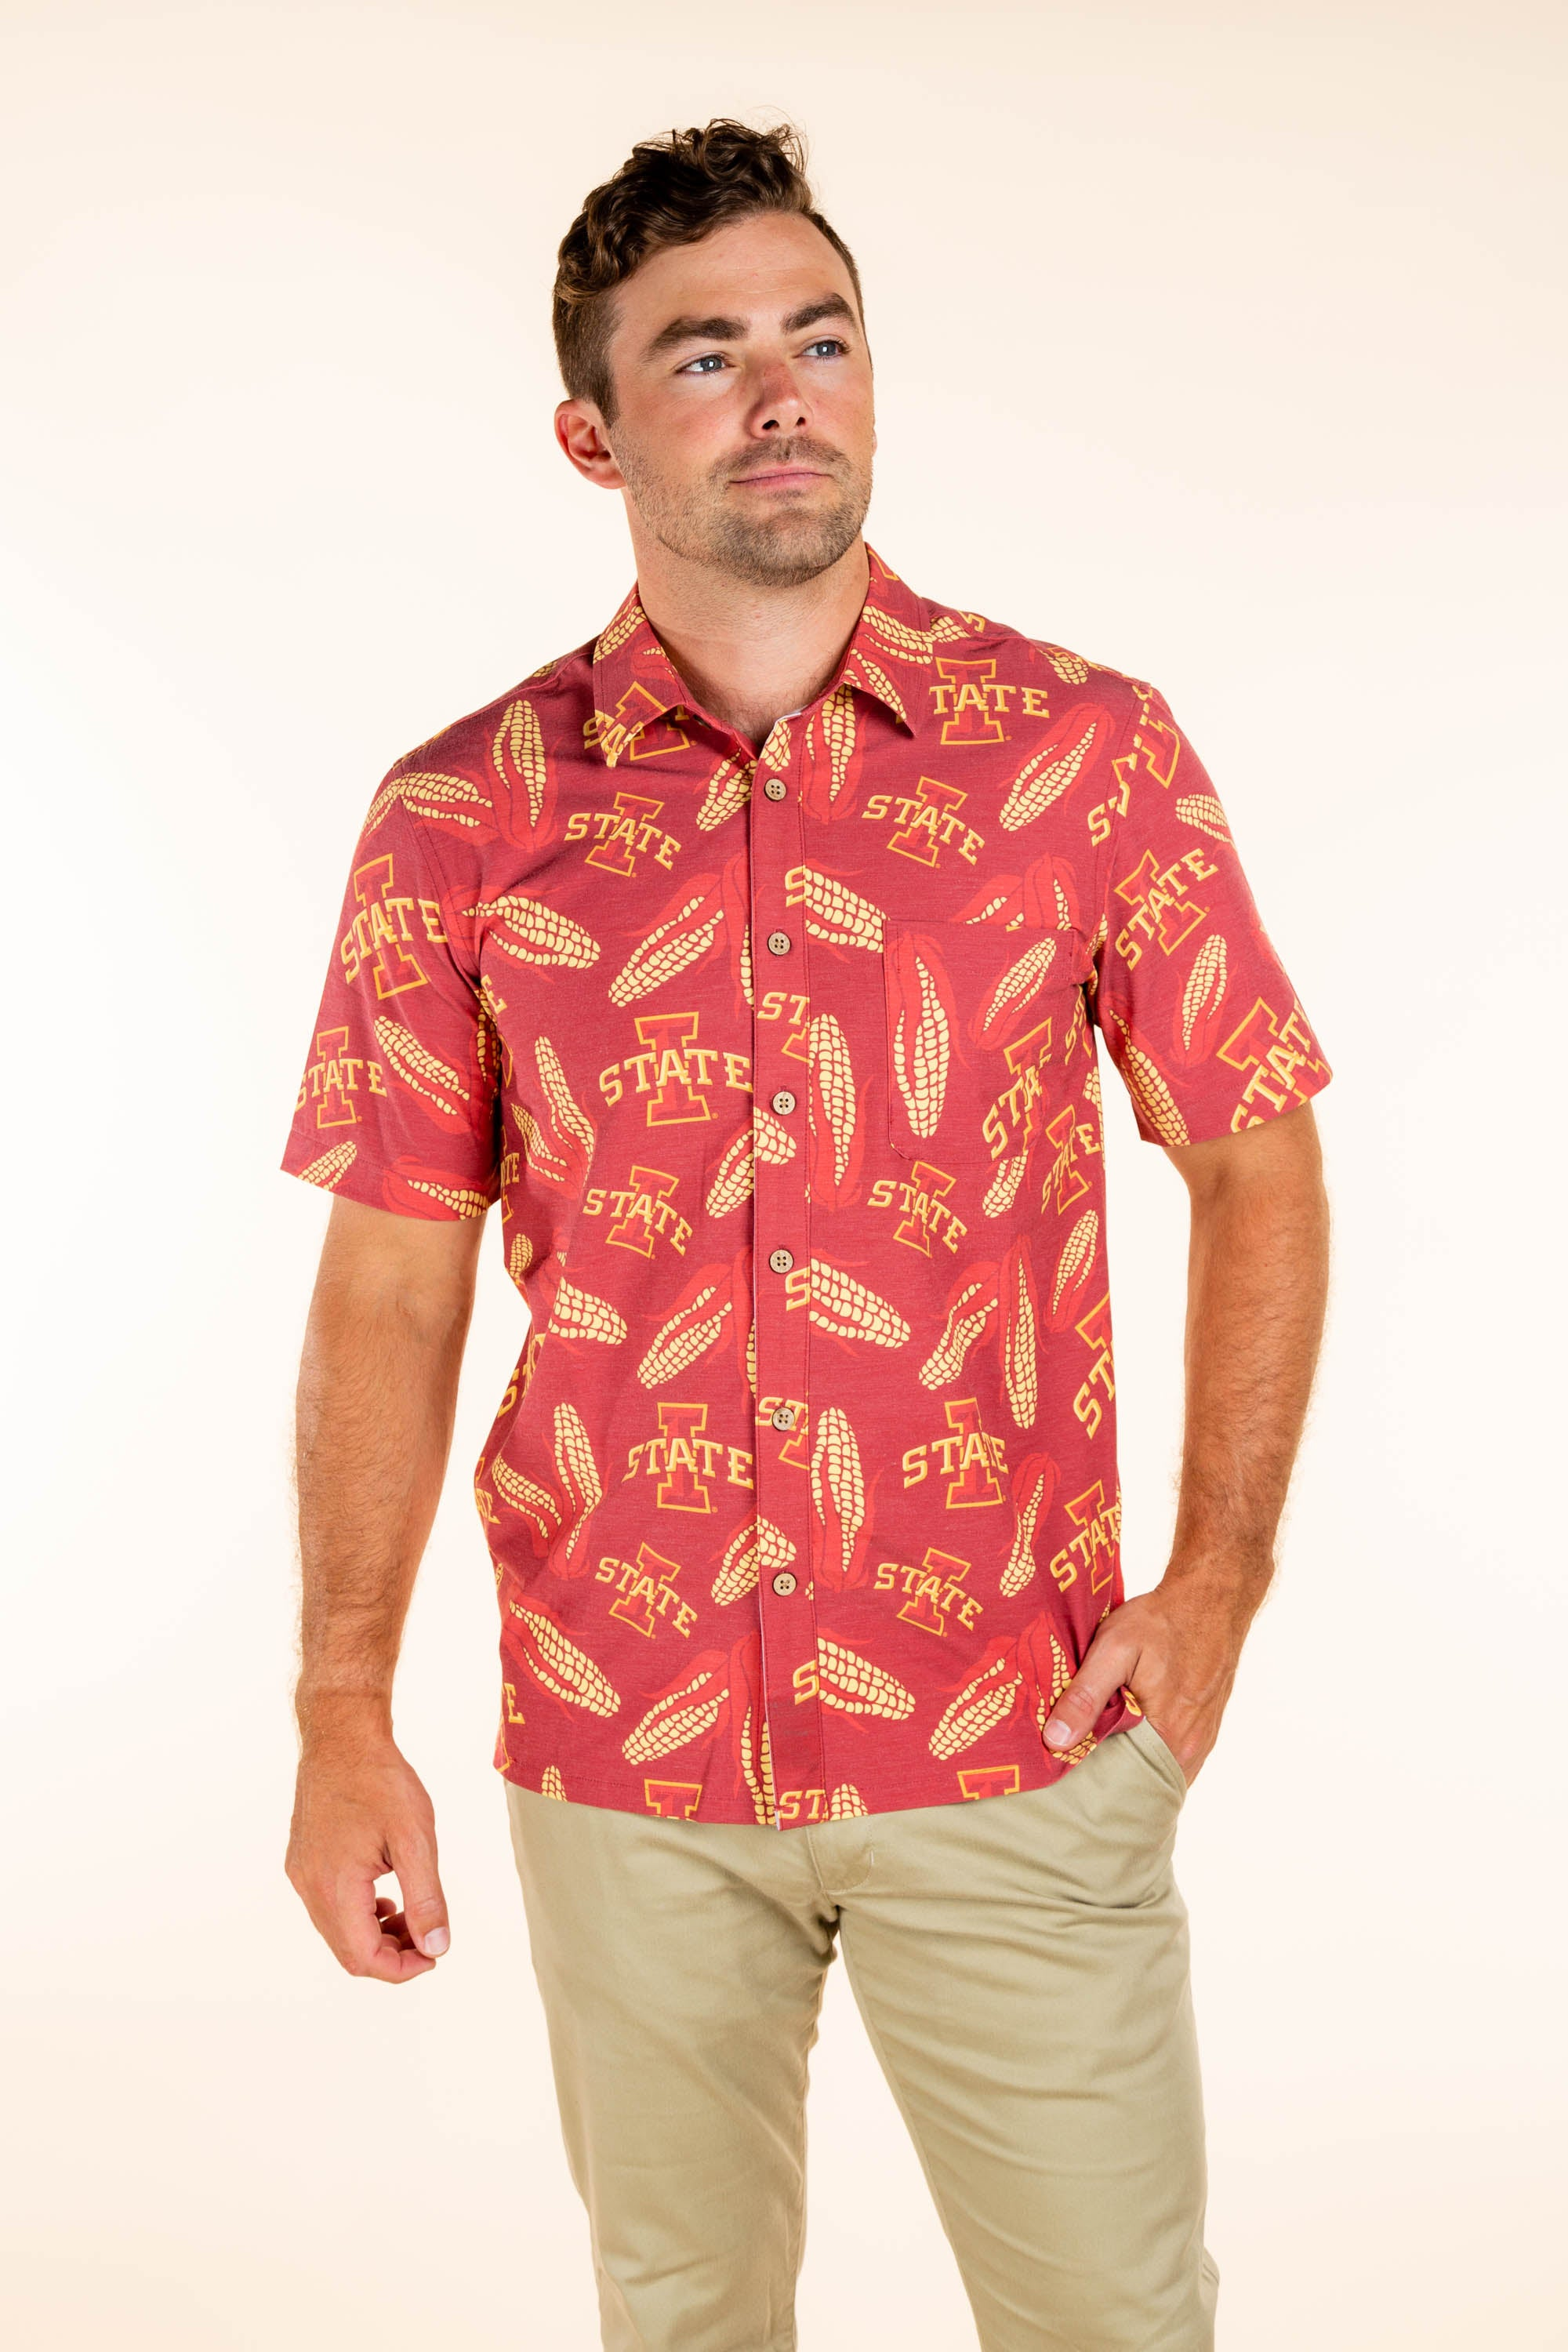 Iowa State Button Up Game Day Shirt